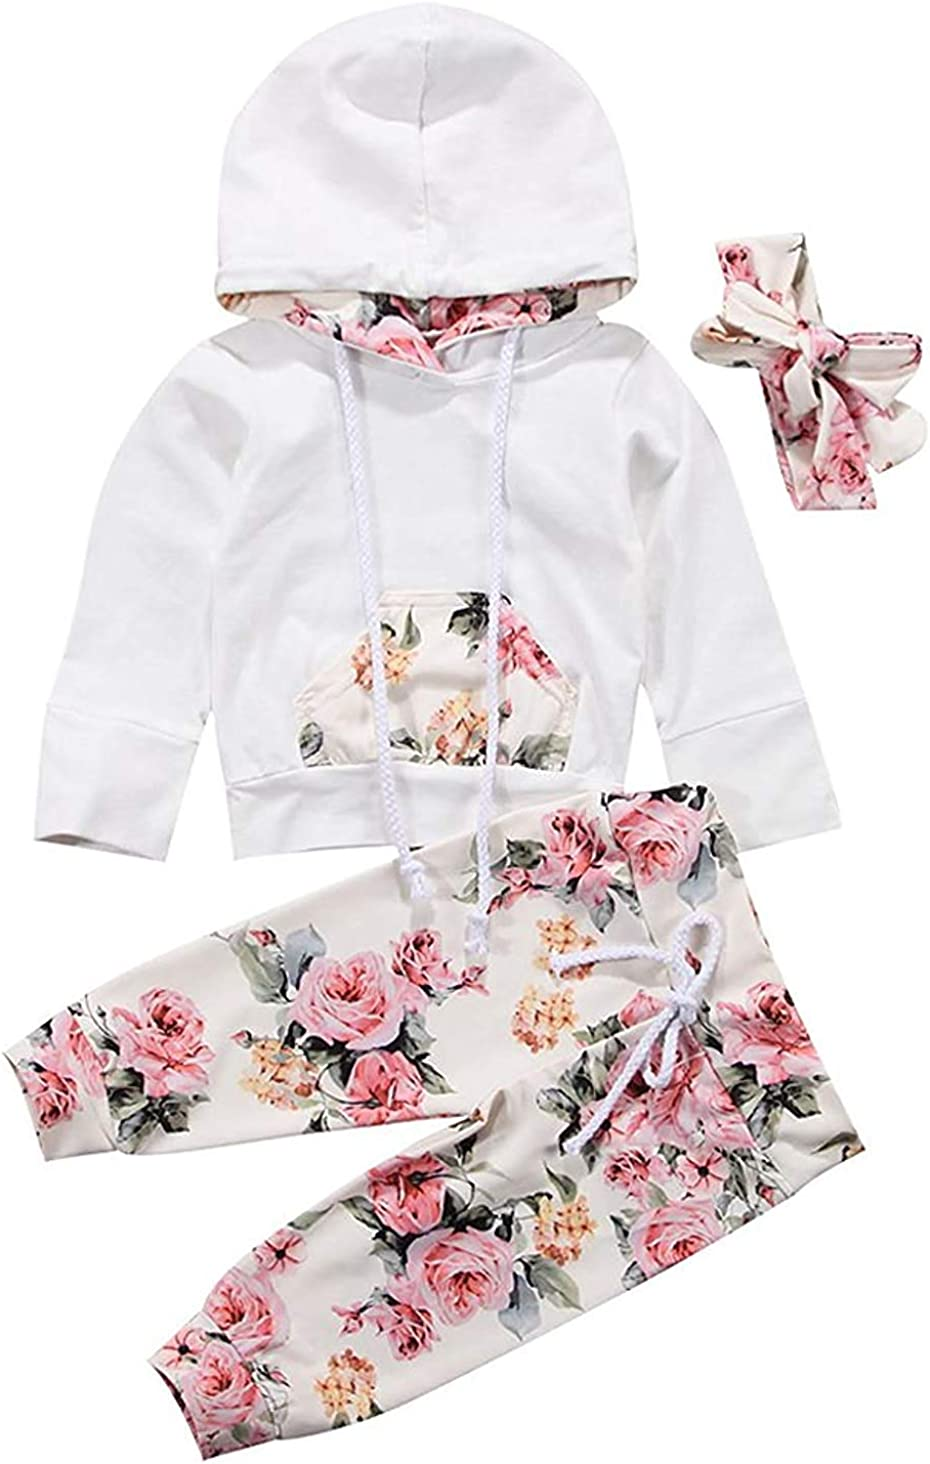 i-Auto Time Cute Newborn Infant Baby Girl Clothes Long Sleeve Hoodie+Floral Pants+Headbands with Bows Outfits Sets